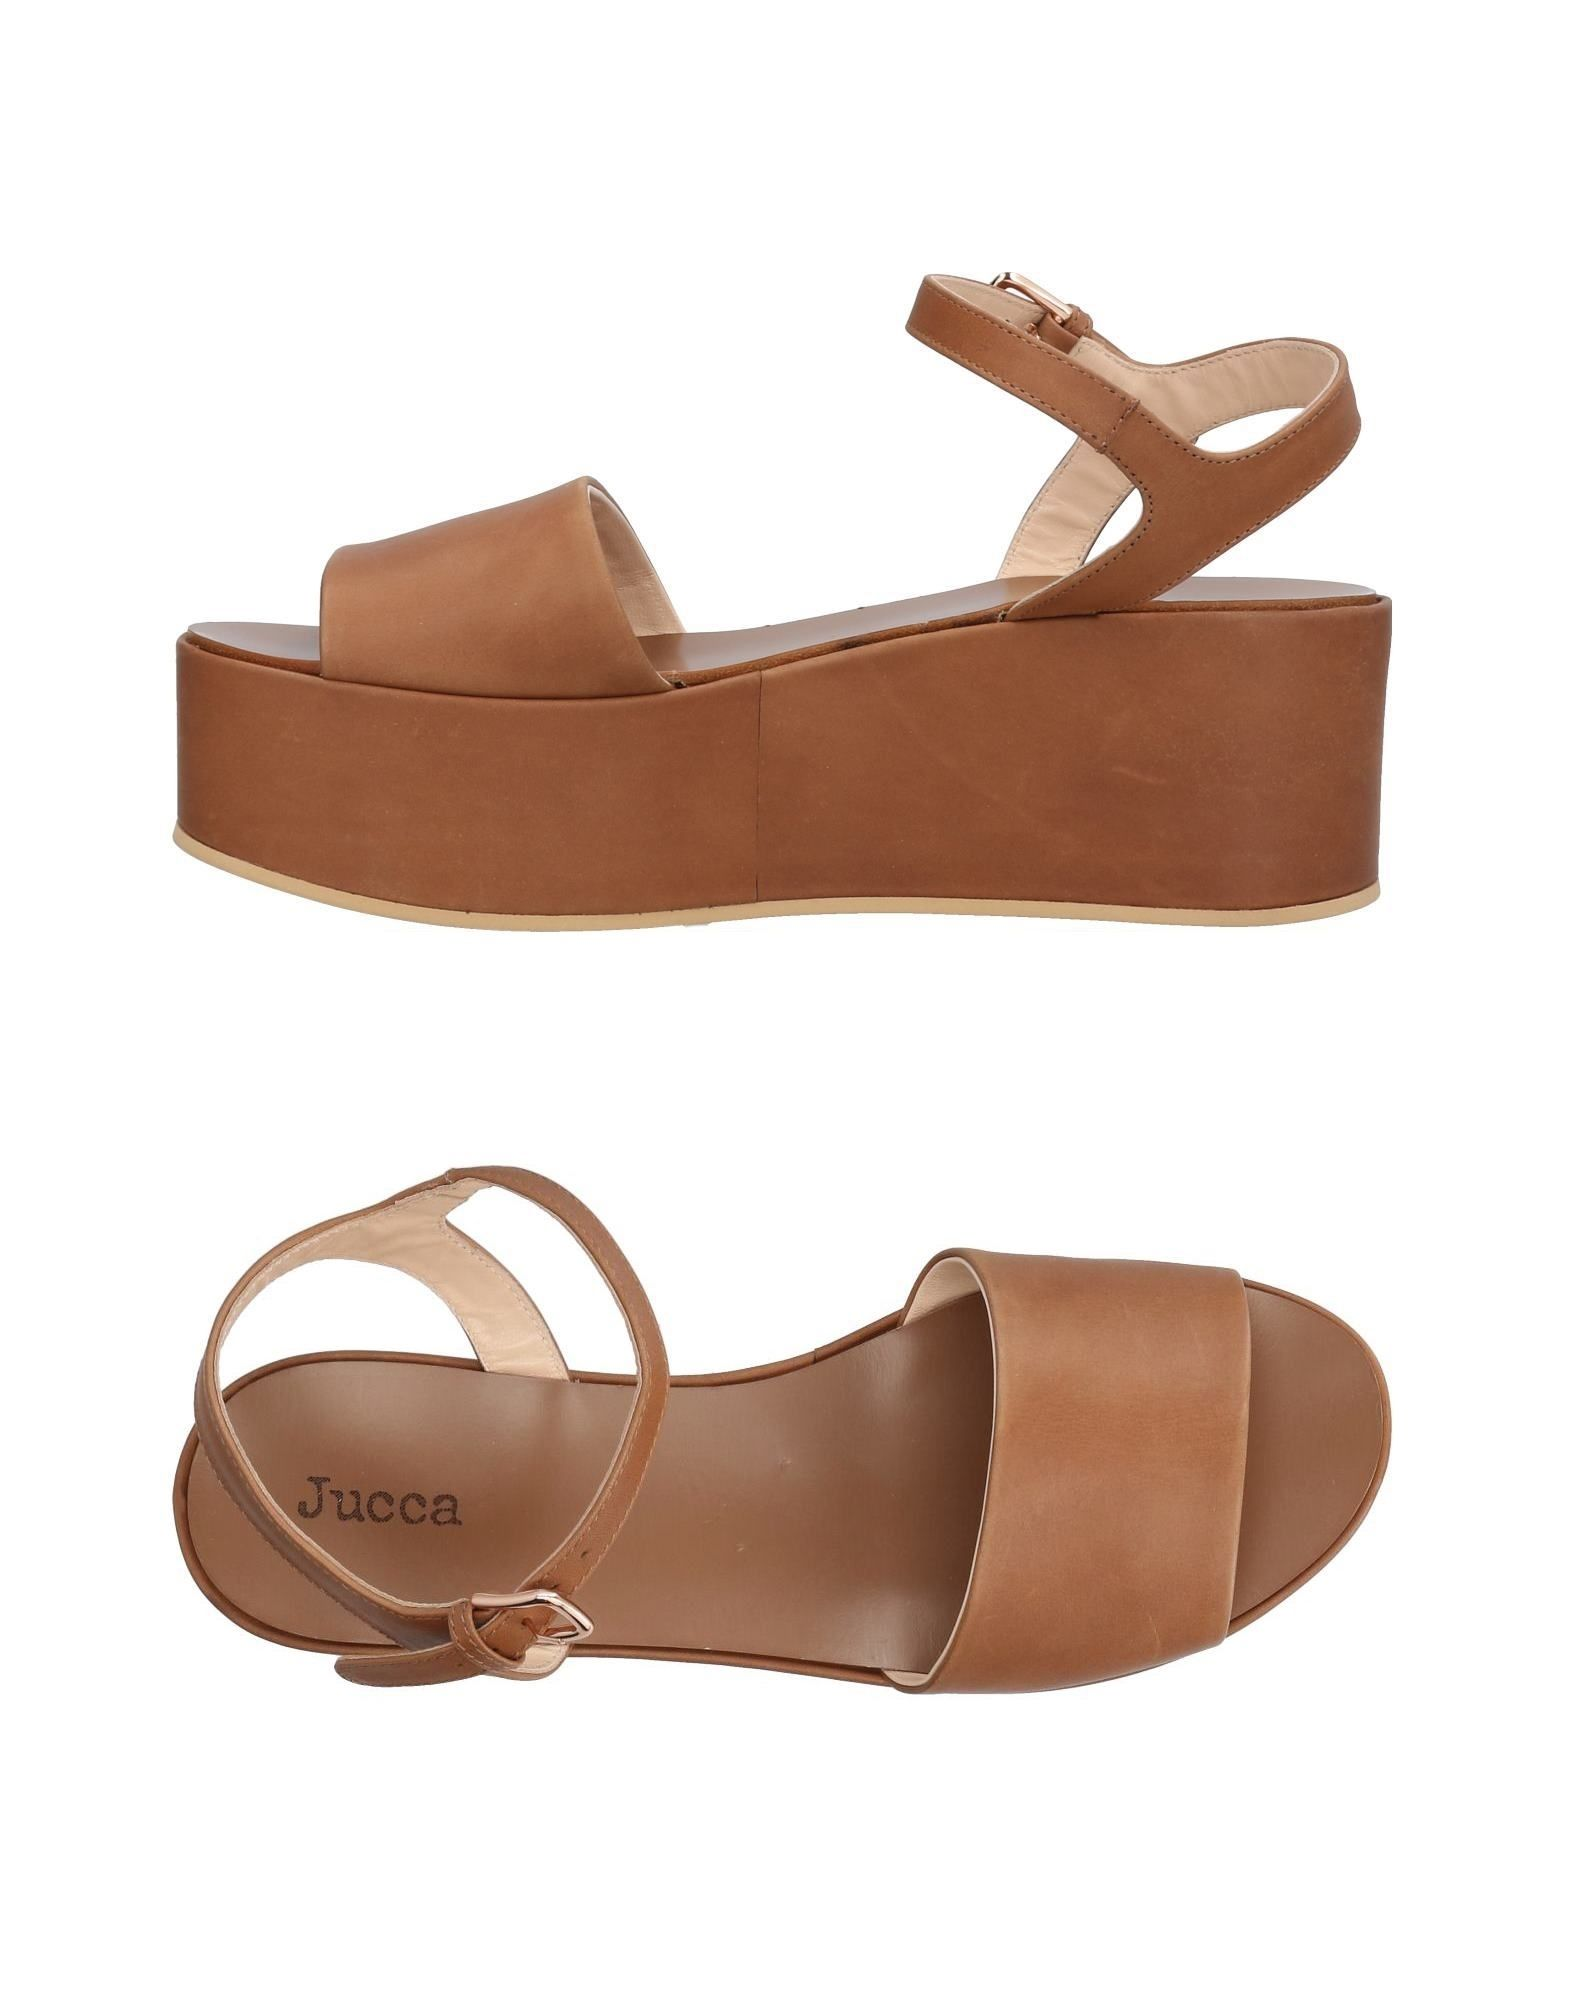 Chaussures - Sandales Jucca 7cKPjlpkM